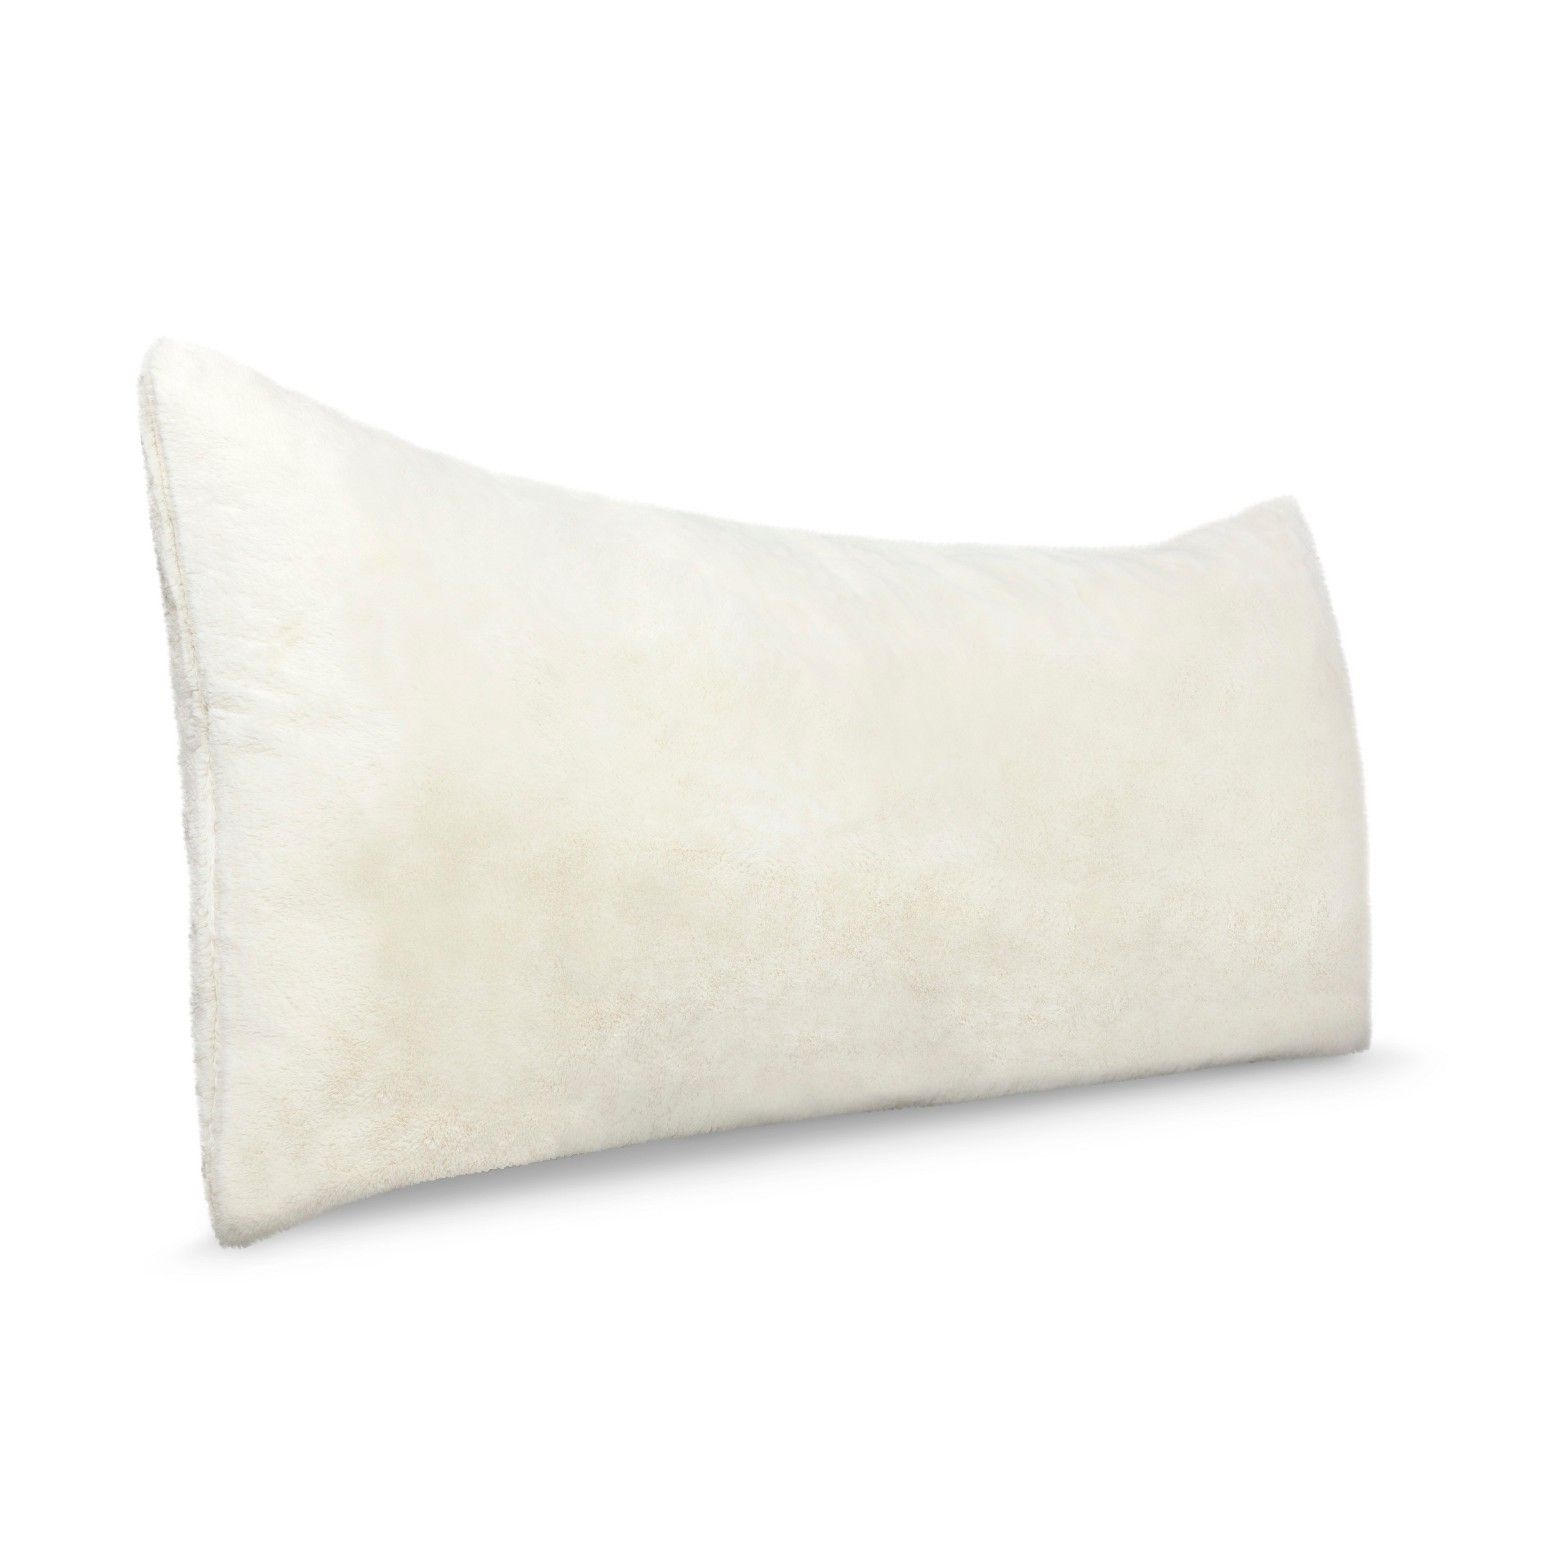 white fur body pillow or pillow cover room essentials fur body pillow cover white or gray